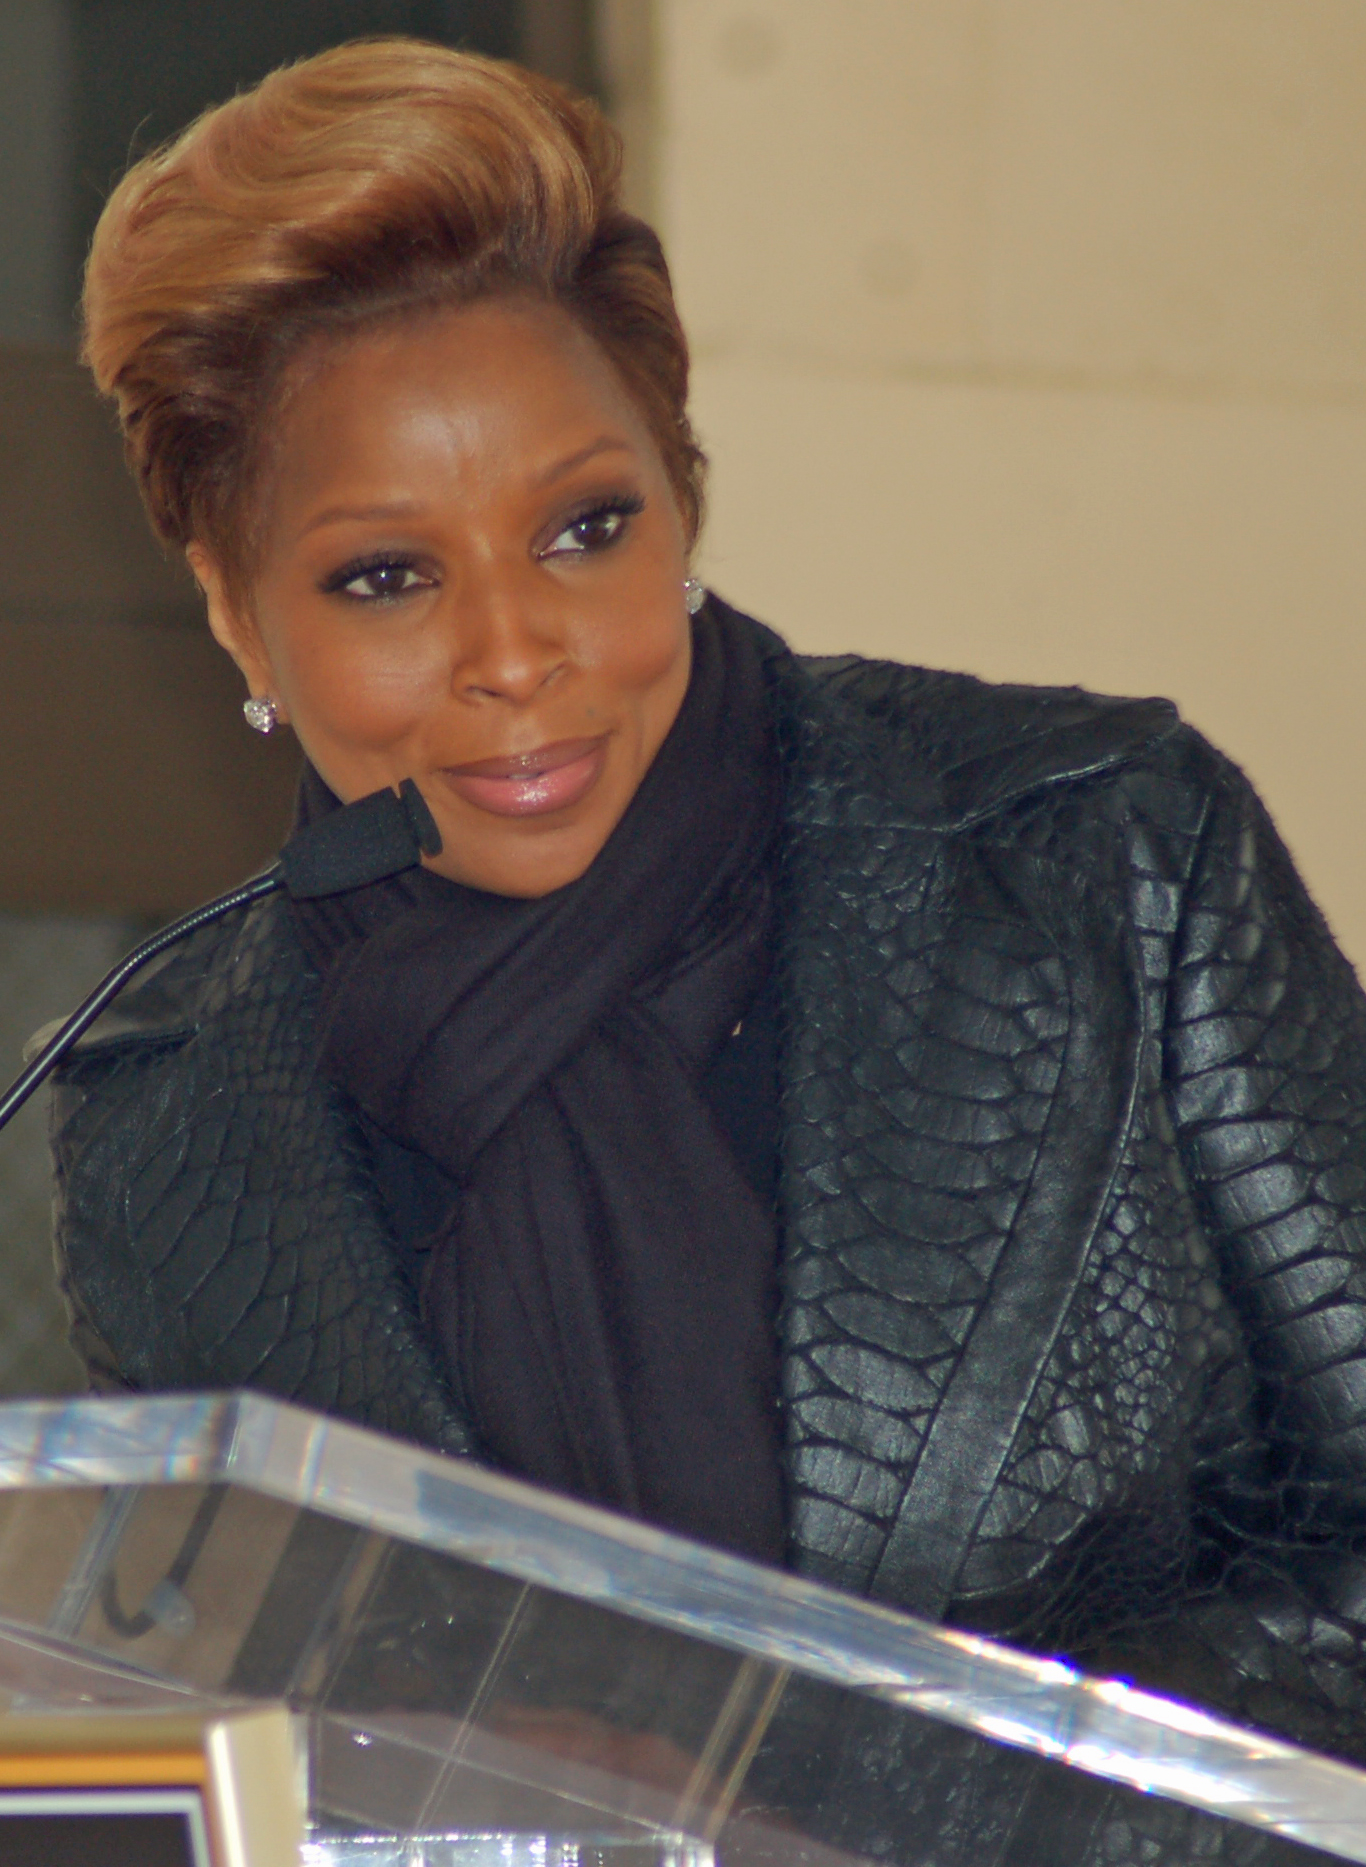 The 47-year old daughter of father Thomas Blige and mother Cora Blige Mary J. Blige in 2018 photo. Mary J. Blige earned a 1 million dollar salary - leaving the net worth at 10 million in 2018